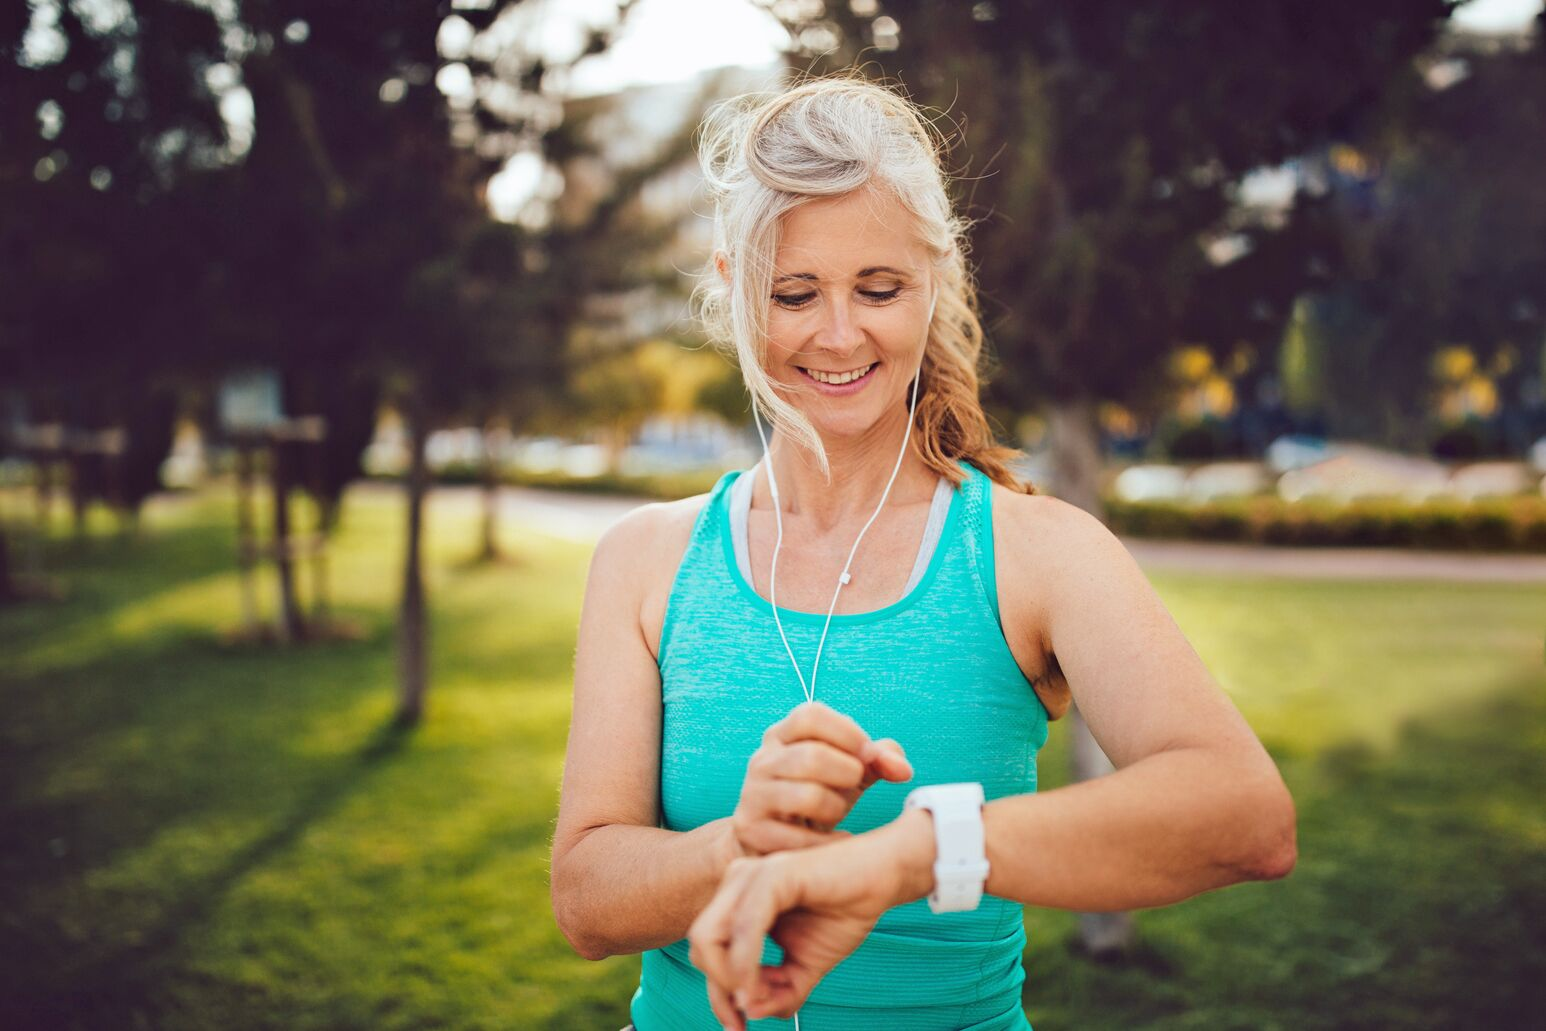 A woman checks her smart watch before a run. Laurence Epstein, MD, discusses the advancements in cardiac monitoring, including Apple Watch and other devices.